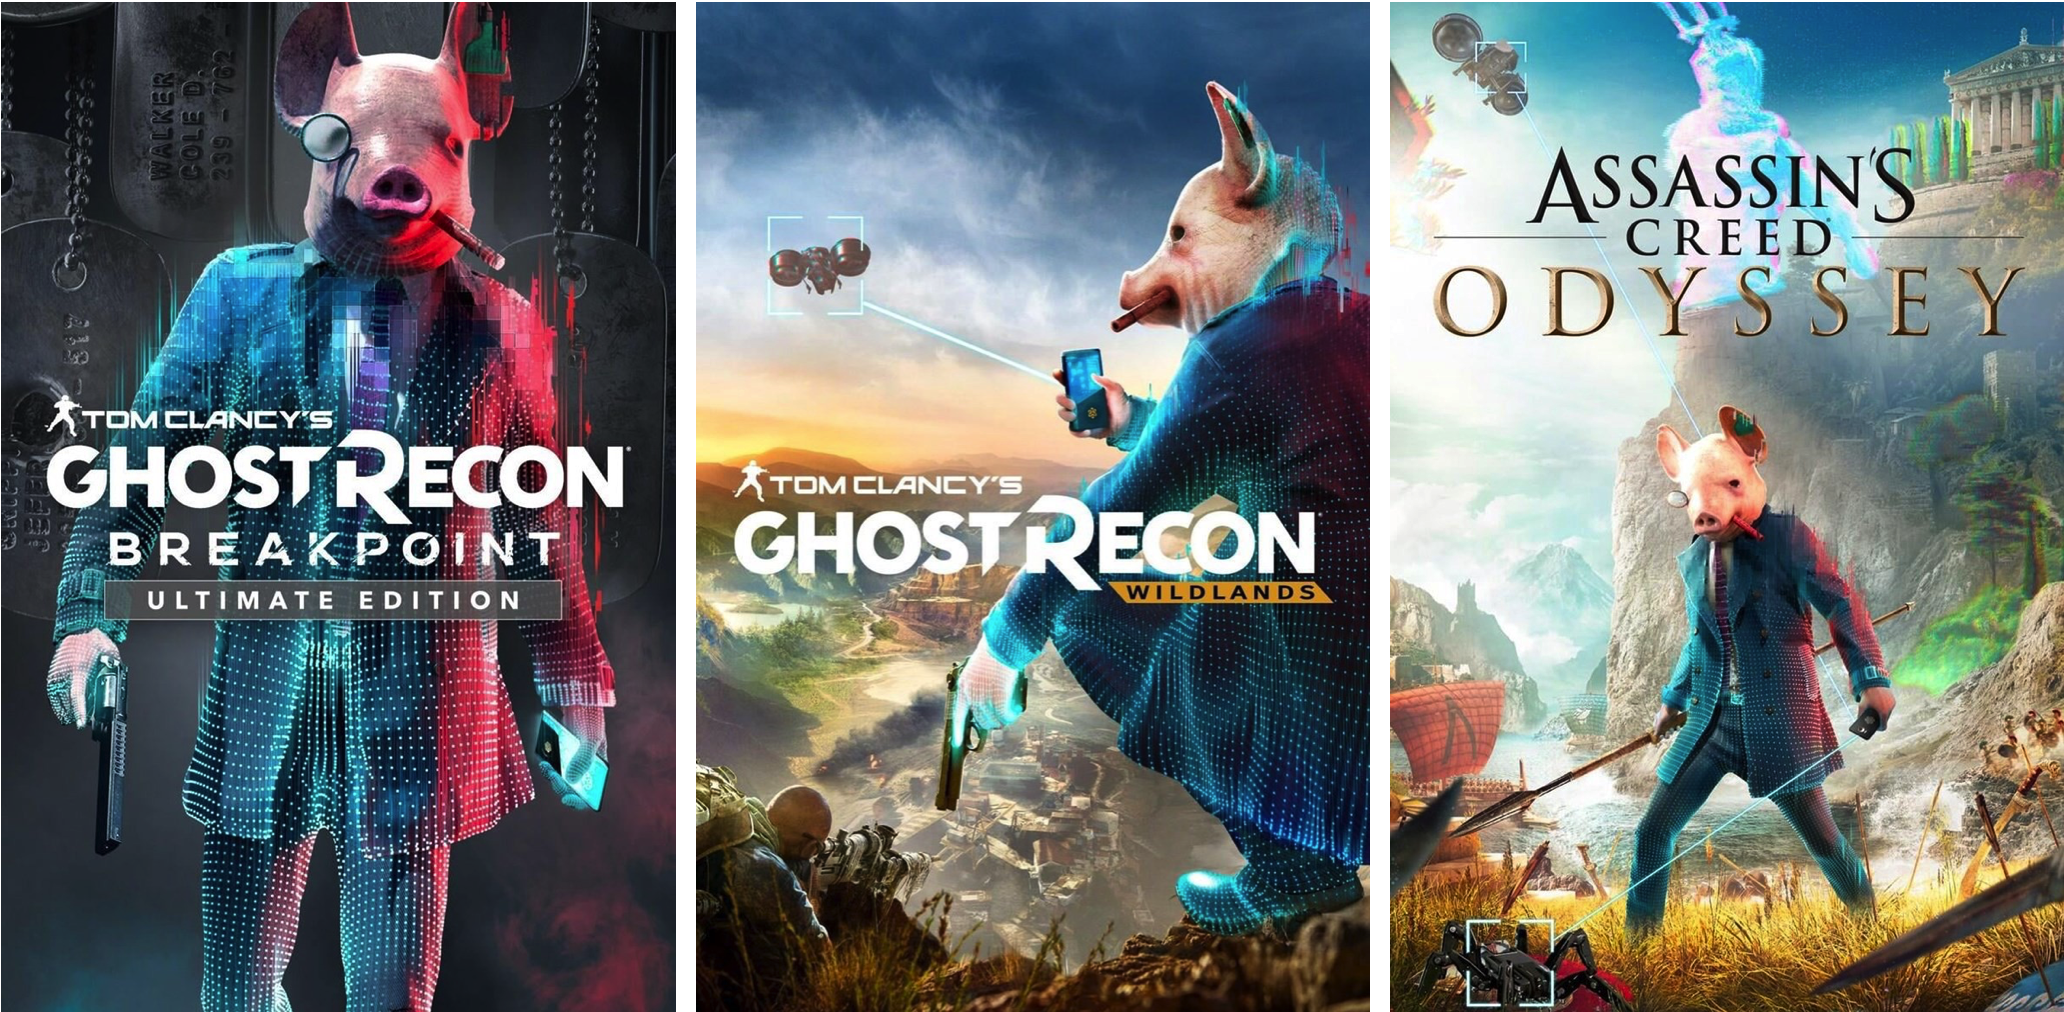 Dedsec Cover Art Is The Best Part Of Ubisoft S Latest Sale By Antony Terence Superjump Oct 2020 Medium